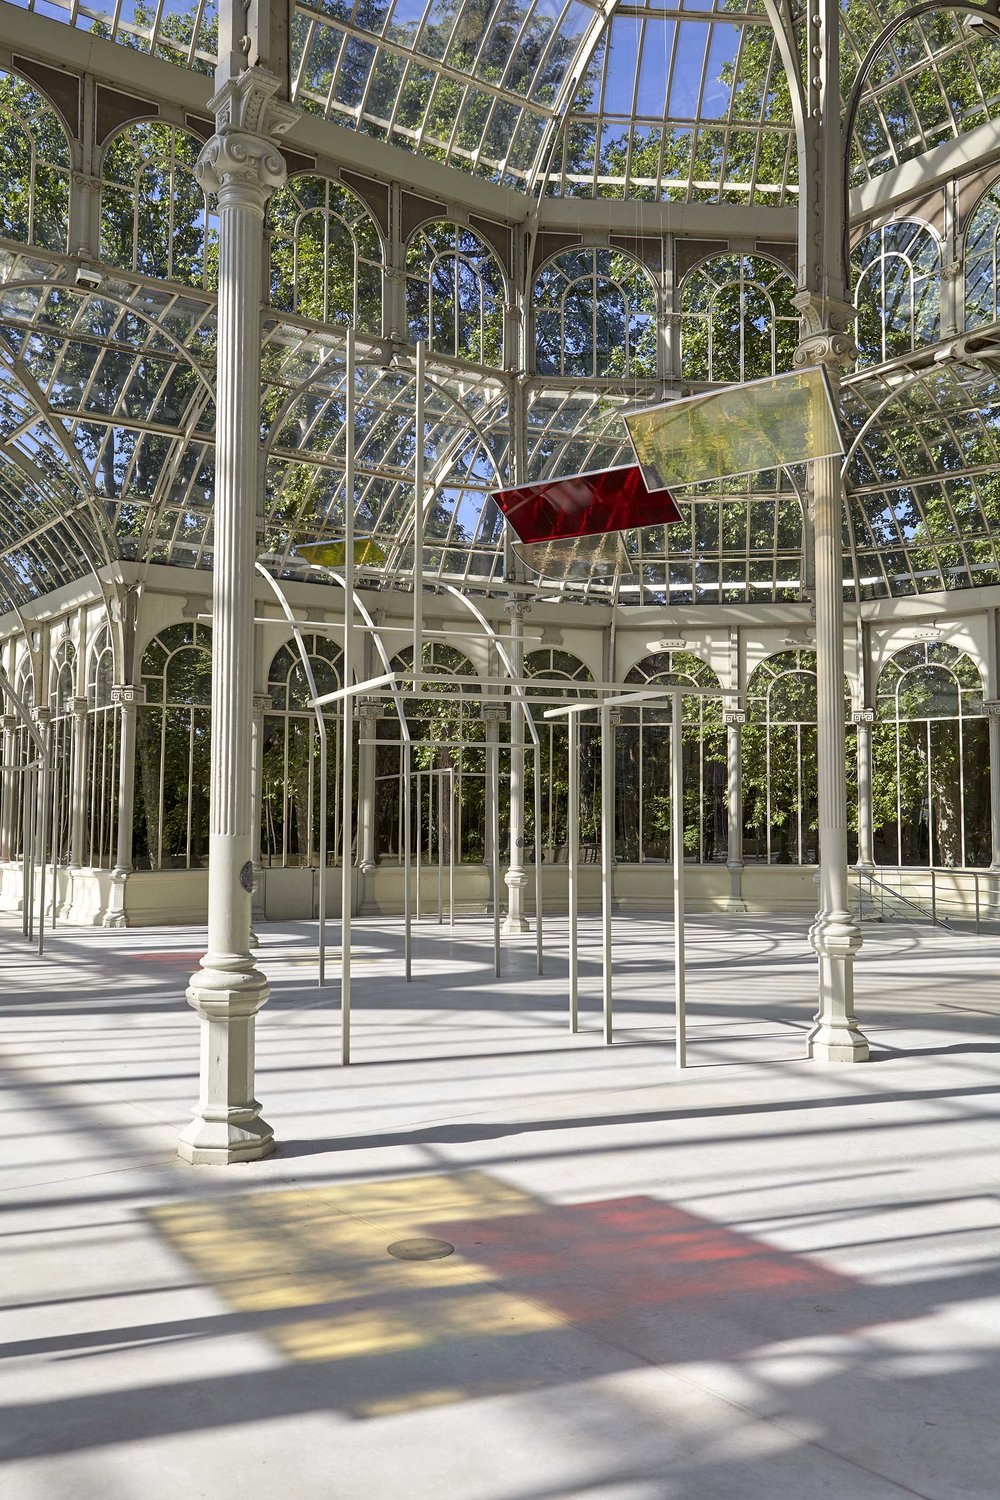 Rosa Barba,  Solar Flux Recordings , 2017; metal, color glass filters, and engraved plates. Installation view, Palacio de Cristal, Museo Nacional Centro de Arte Reina Sofía, Madrid. Photo: Joaquín Cortés / Román Lores © Rosa Barba